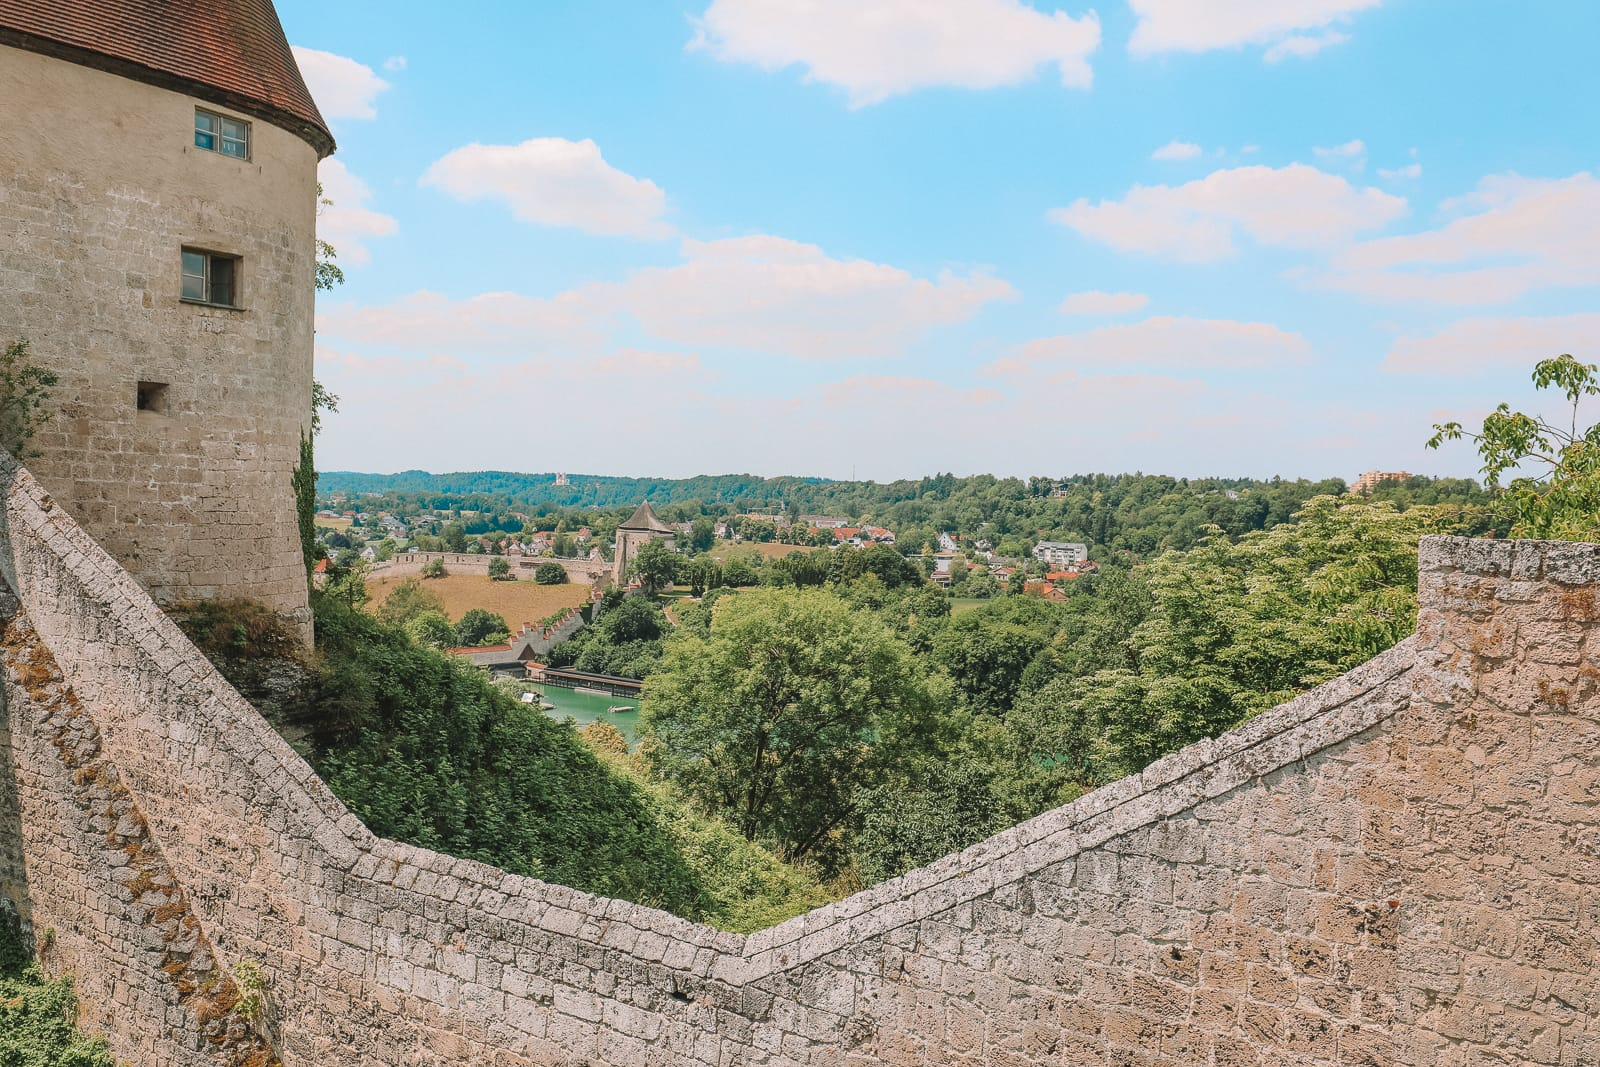 Burghausen Castle - The Longest Castle In The Entire World! (70)